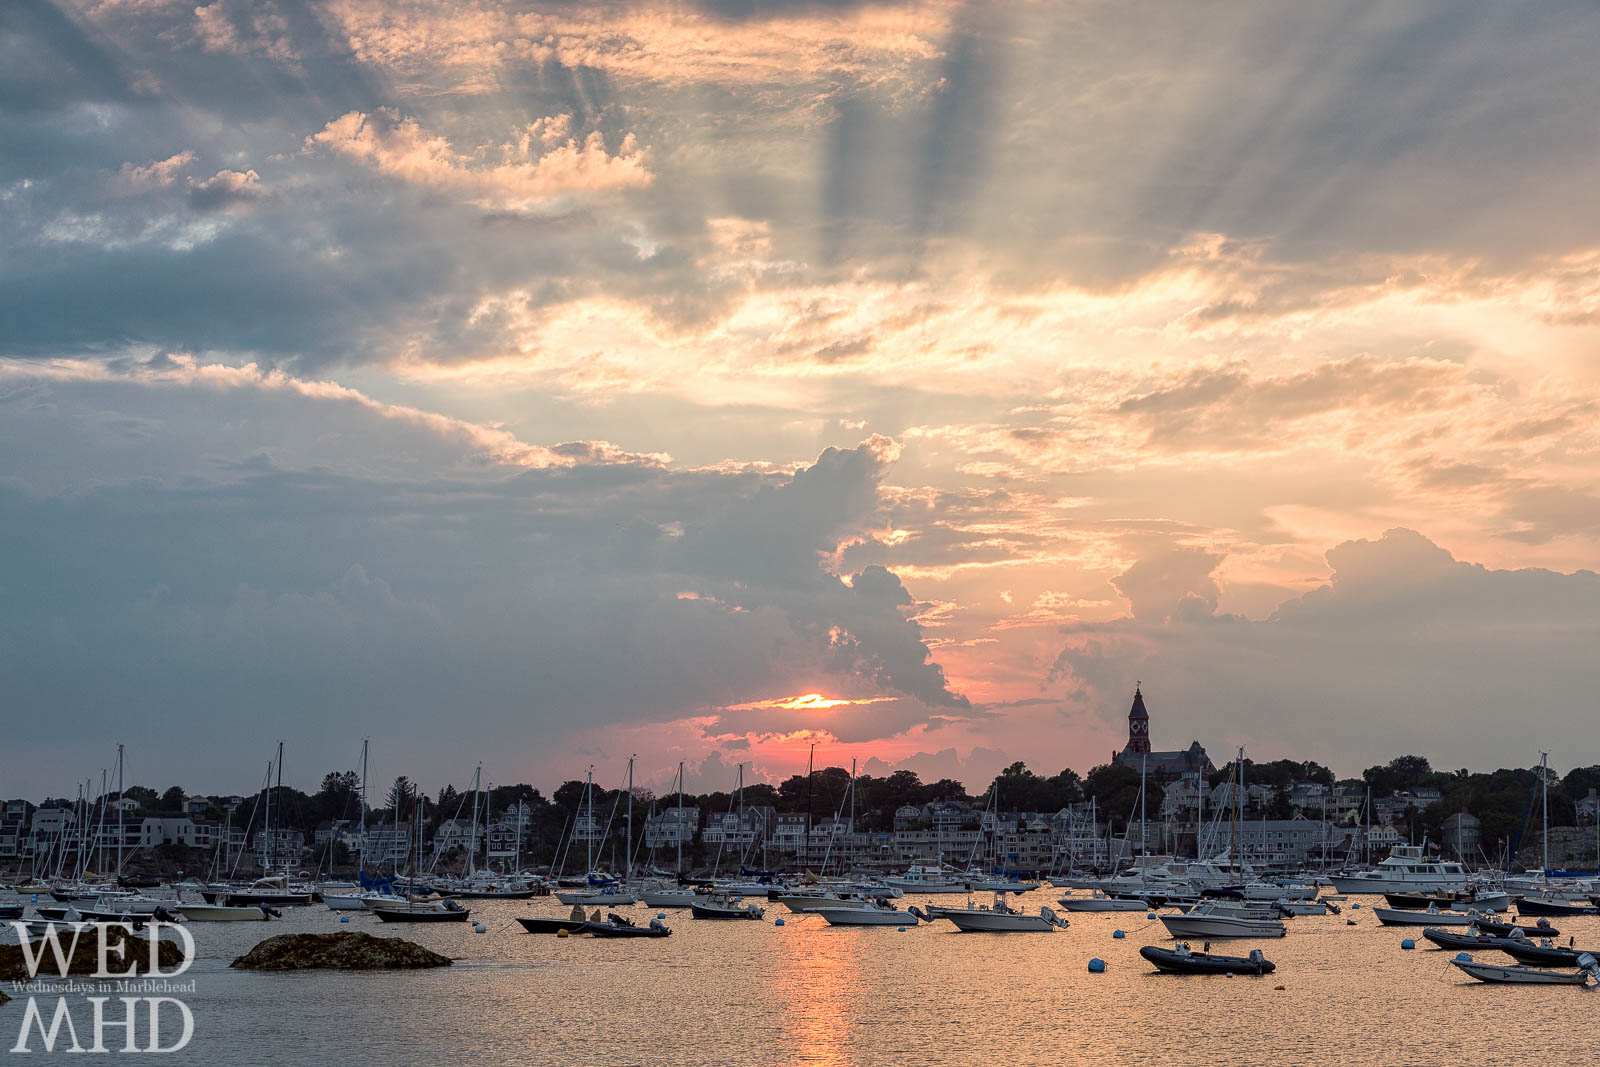 An explosive sunset forms rays of light over Marblehead Harbor and Abbot Hall